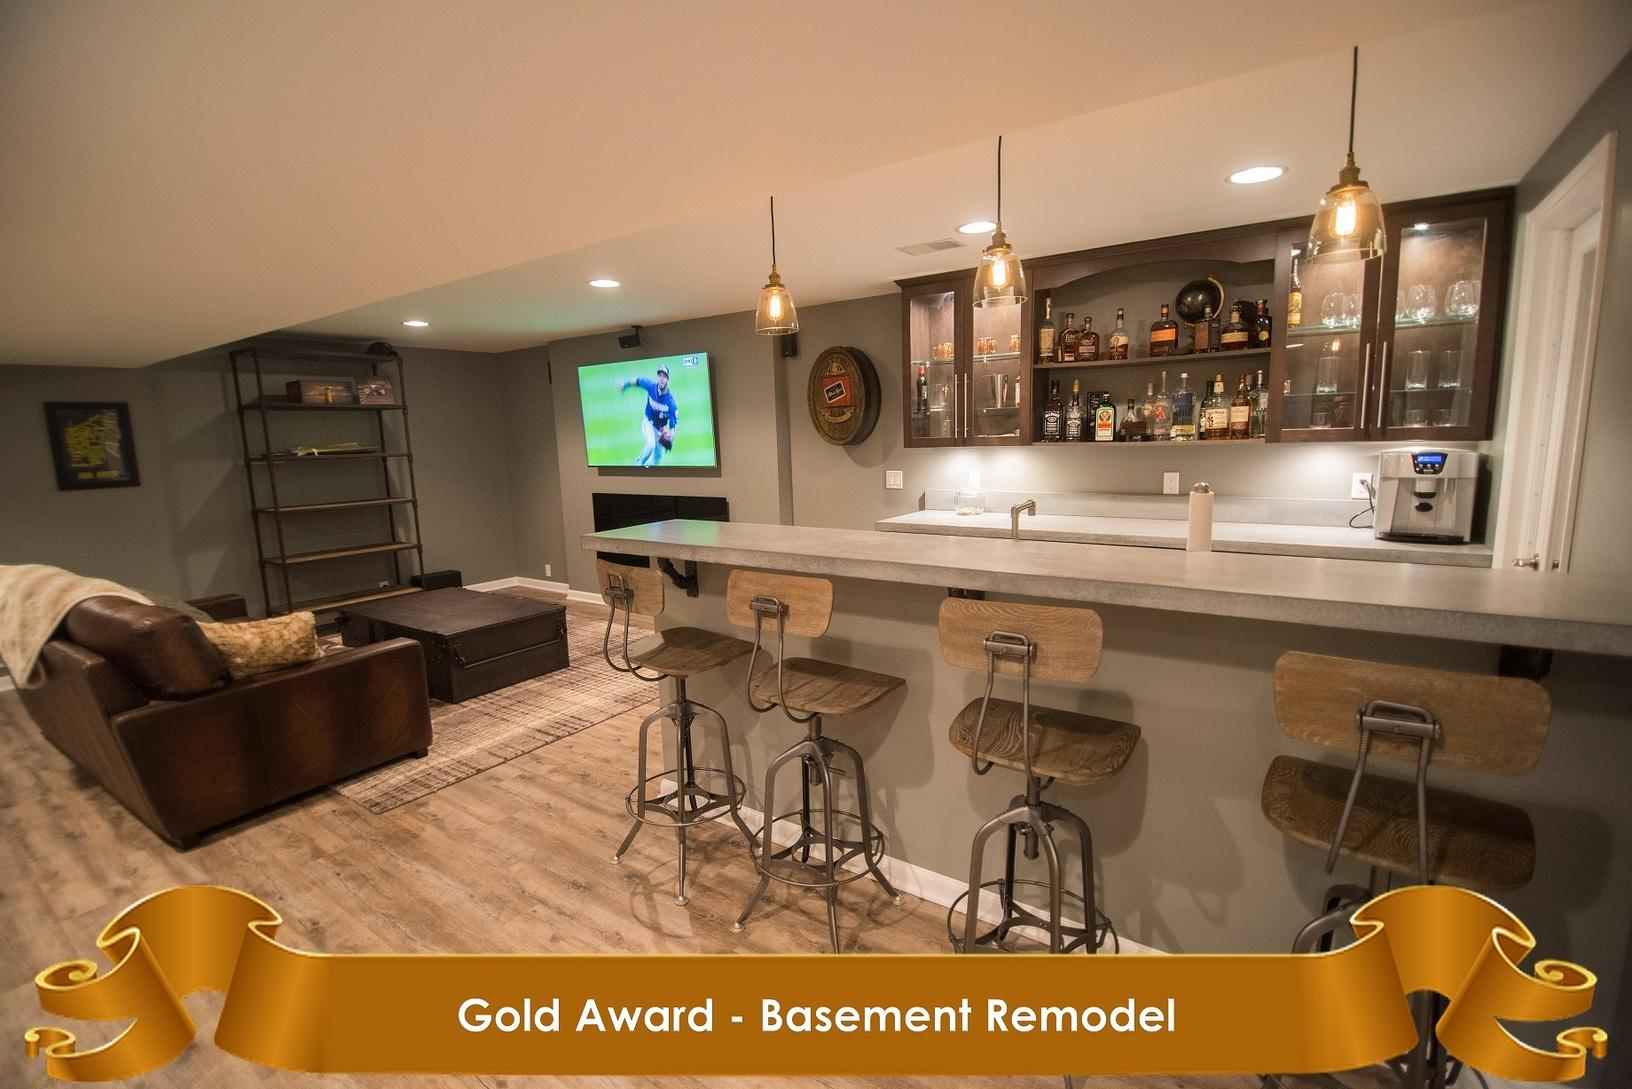 home builders association of south eastern michigan gold award for basement remodel finished basements plus